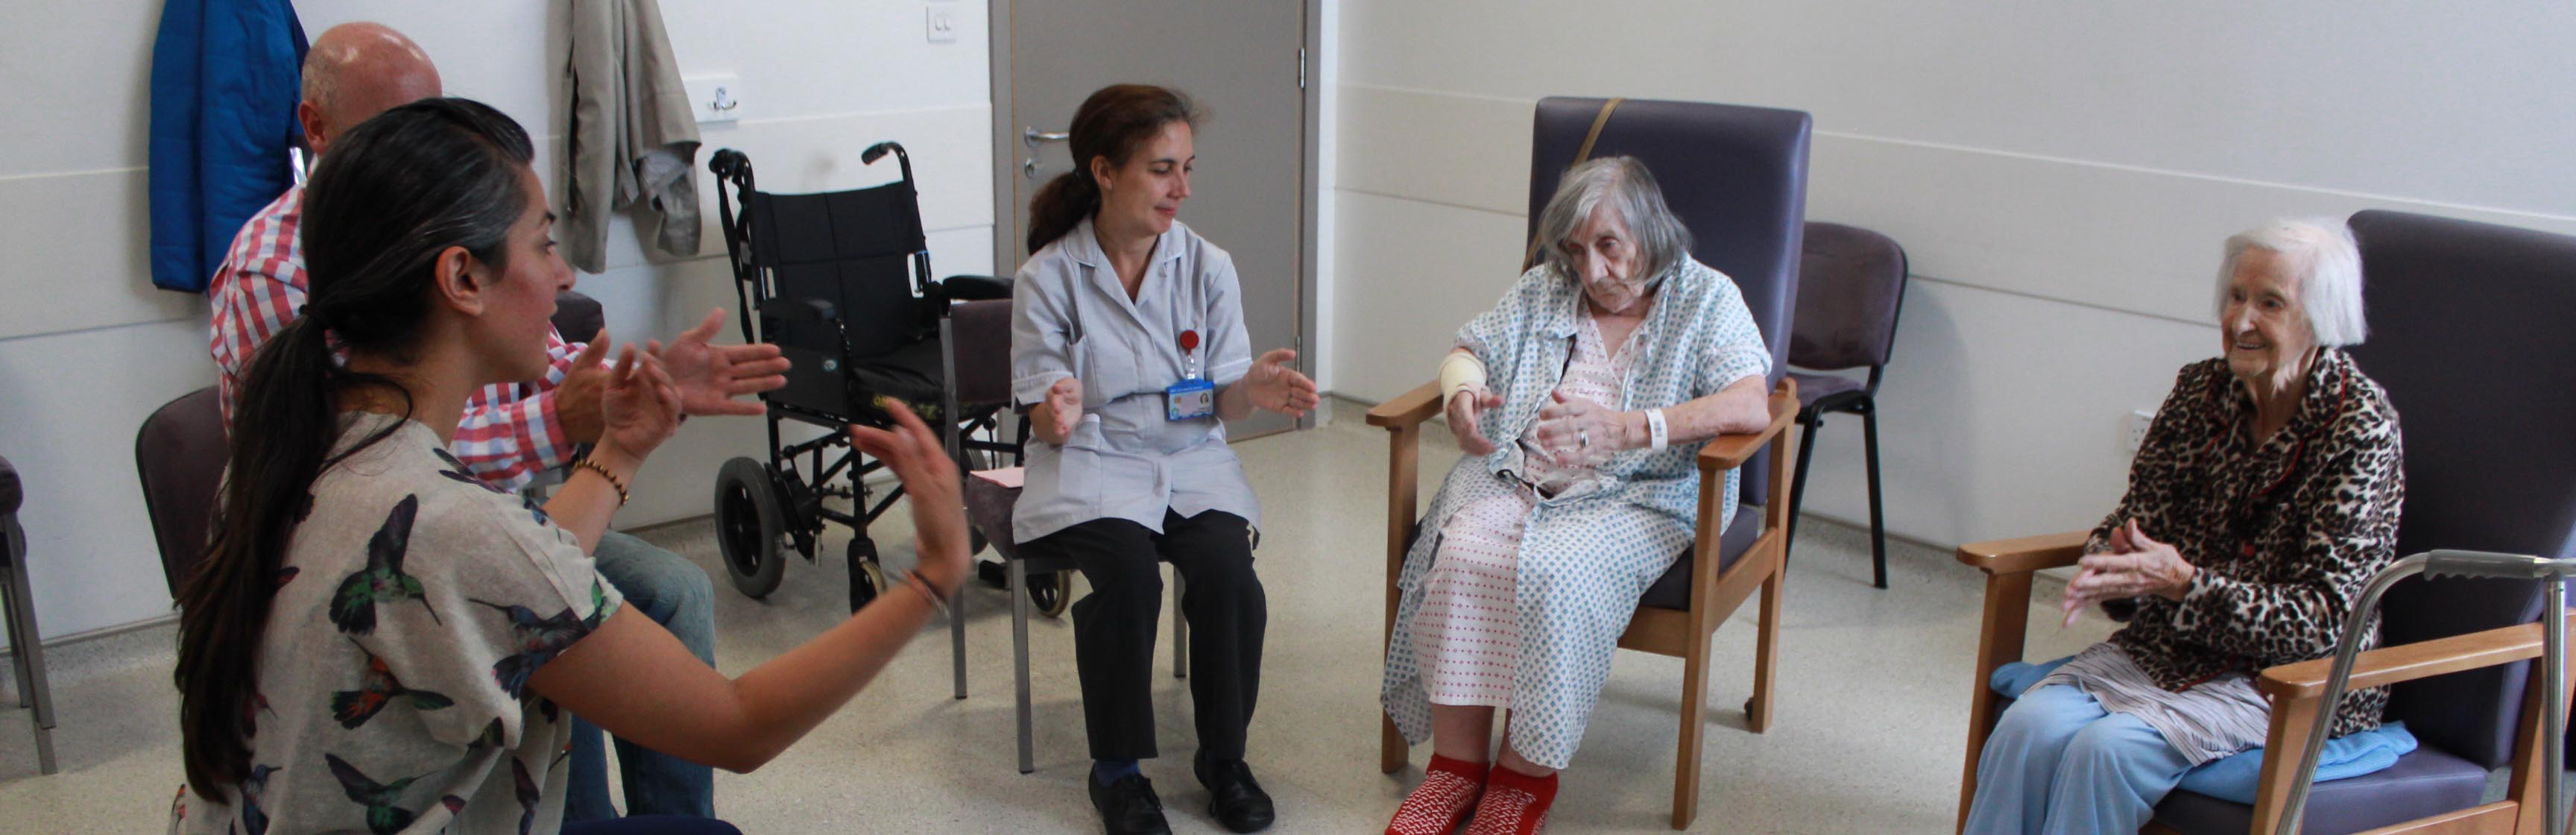 Working closely with Occupational Therapists, Akademi brings a series of Dance Well workshops to our older adult department at The Royal London Hospital.